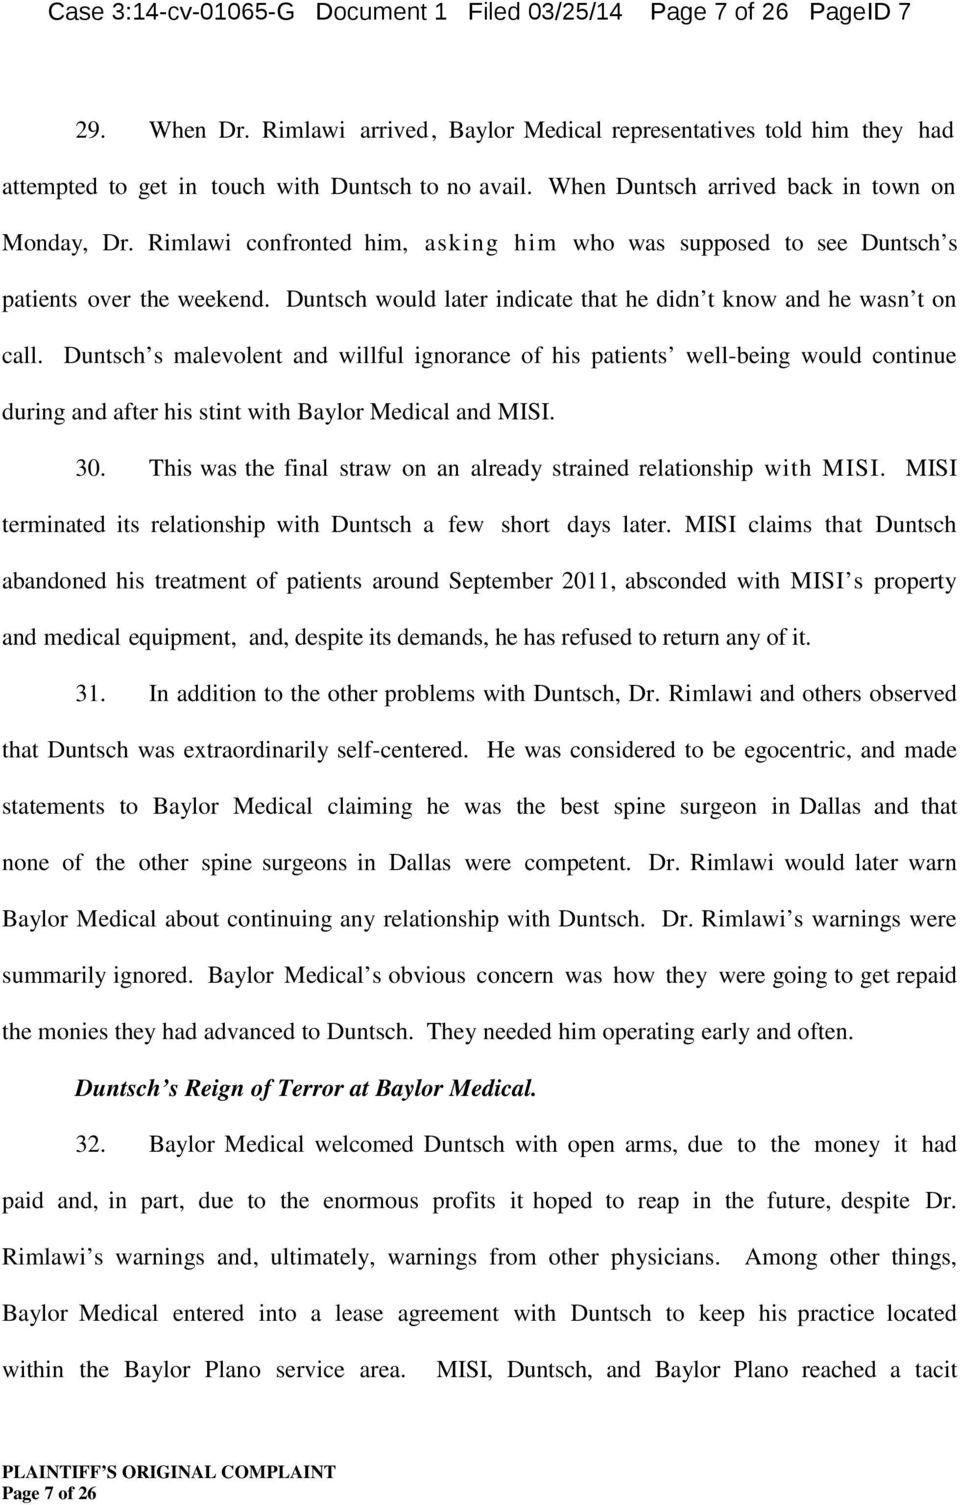 Duntsch would later indicate that he didn t know and he wasn t on call.